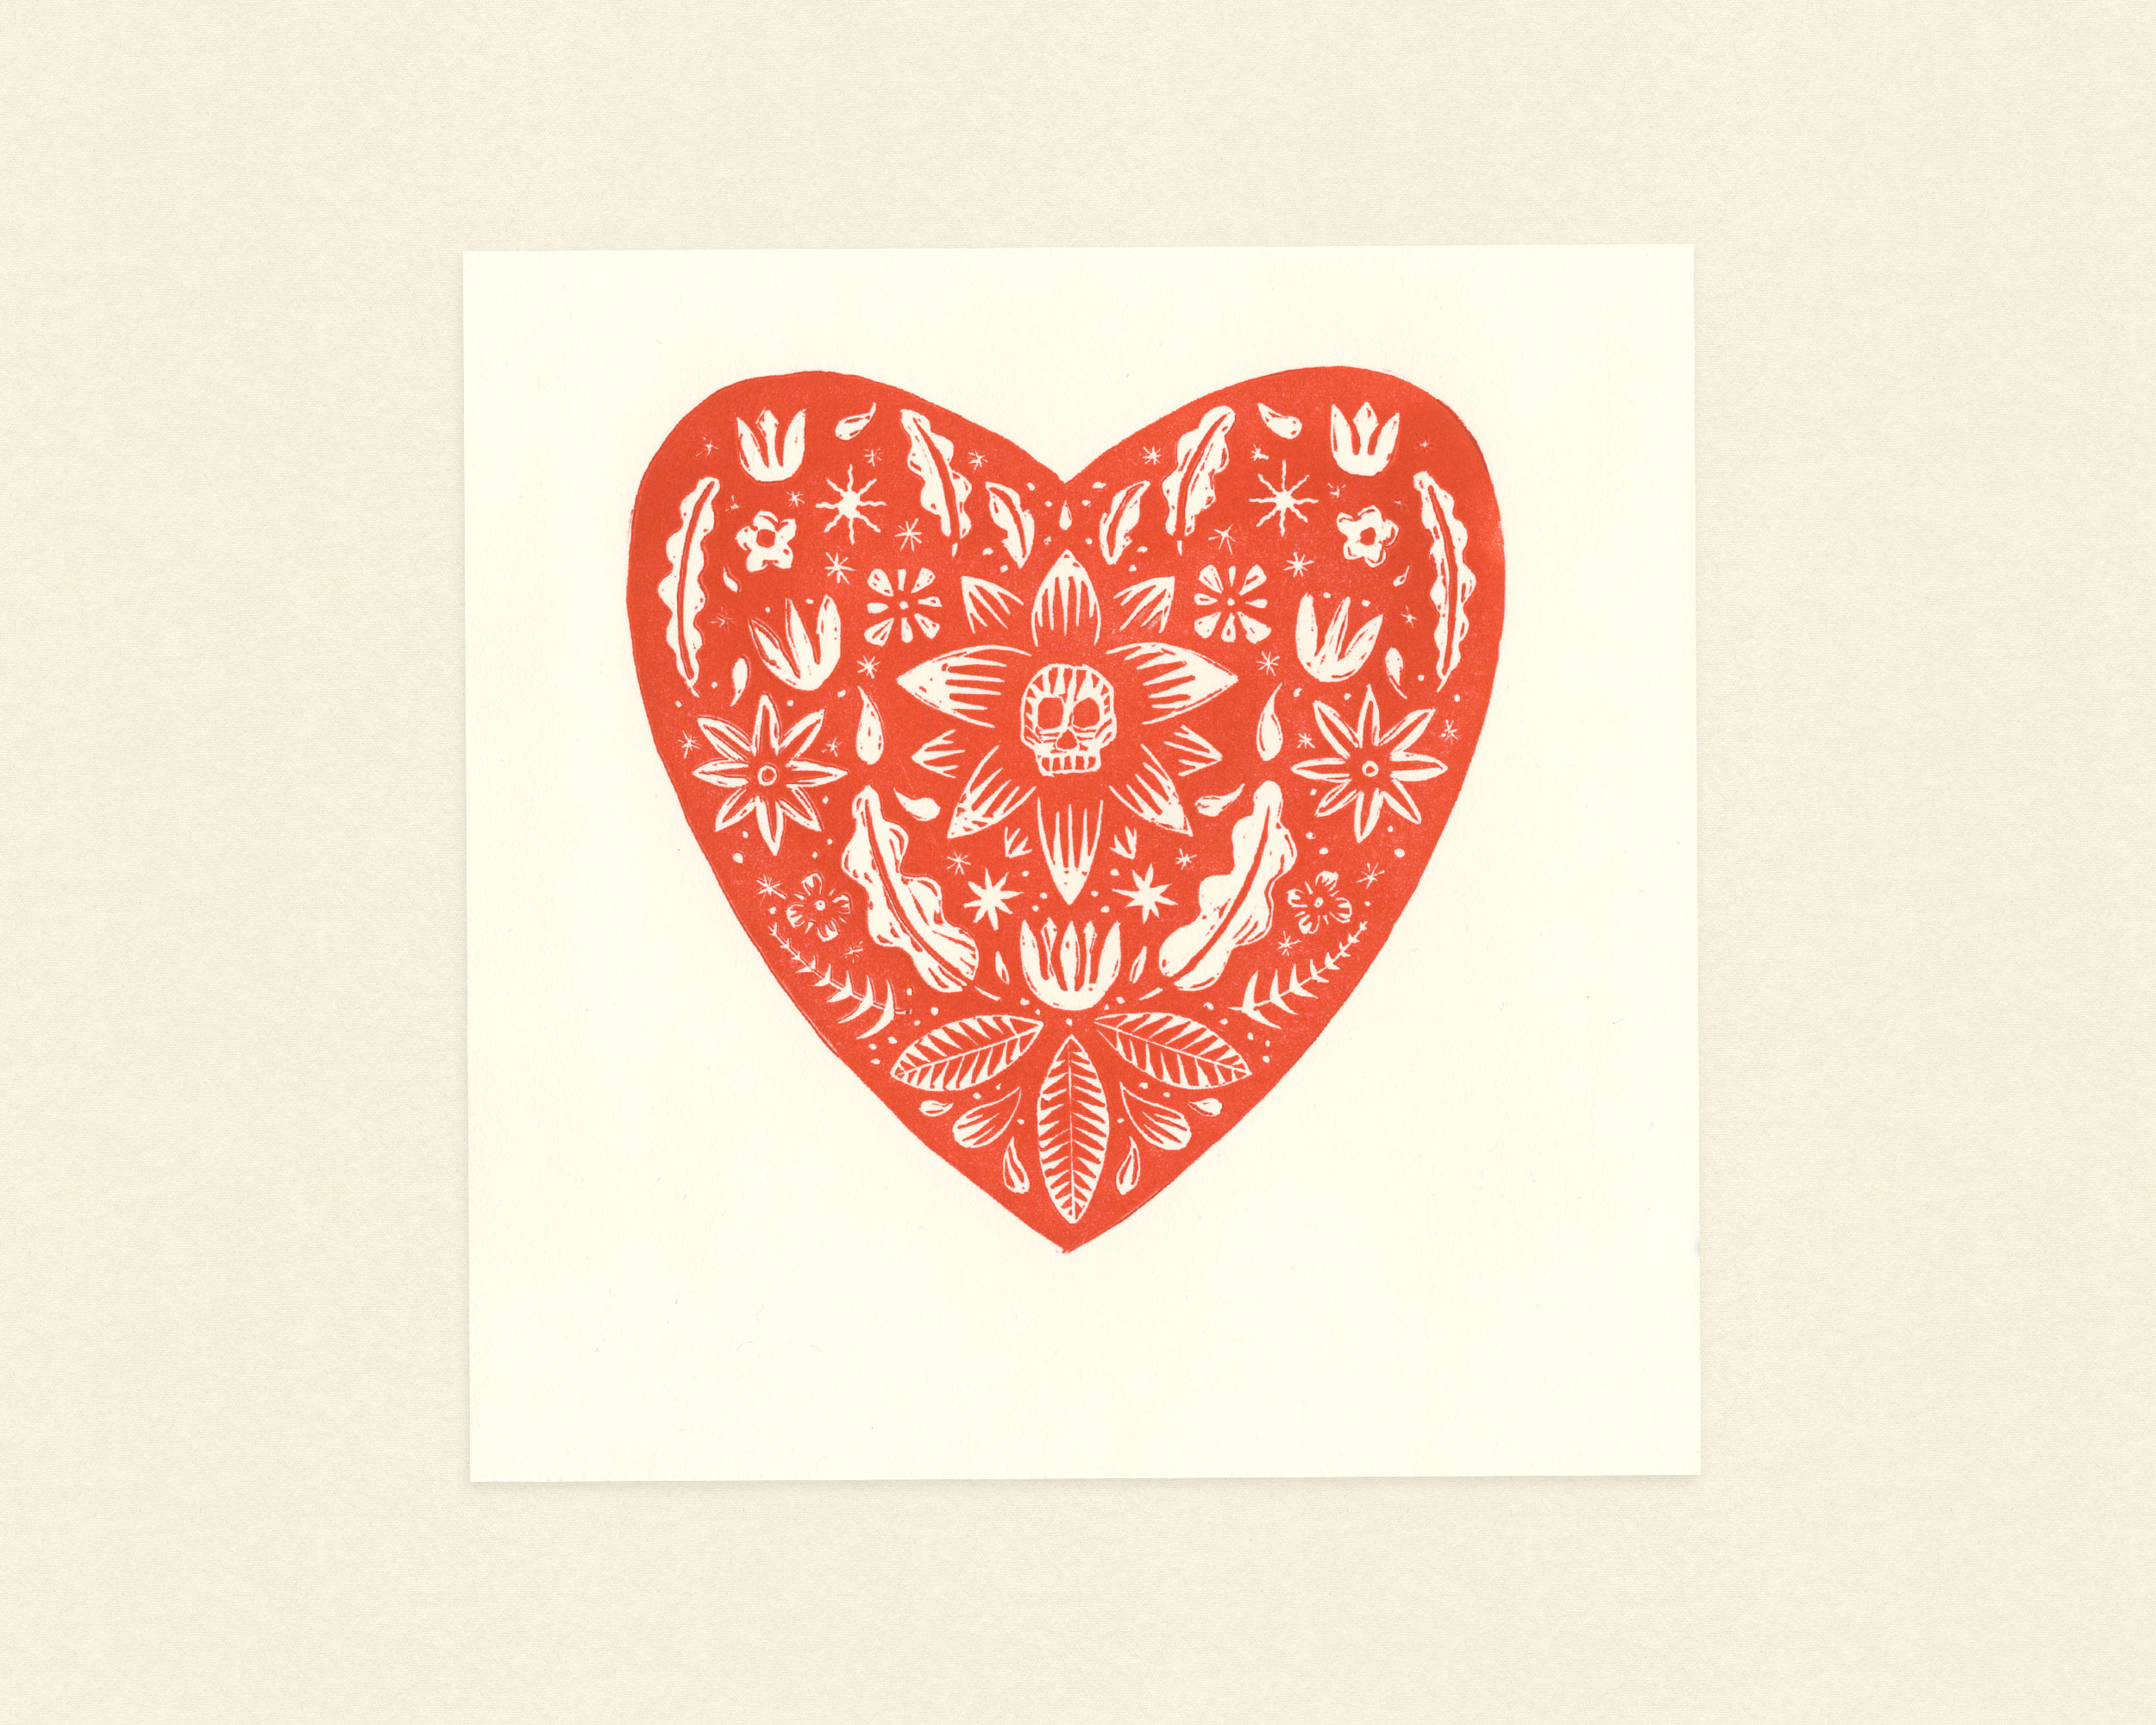 Ink block printing is the featured craft for April's art box.